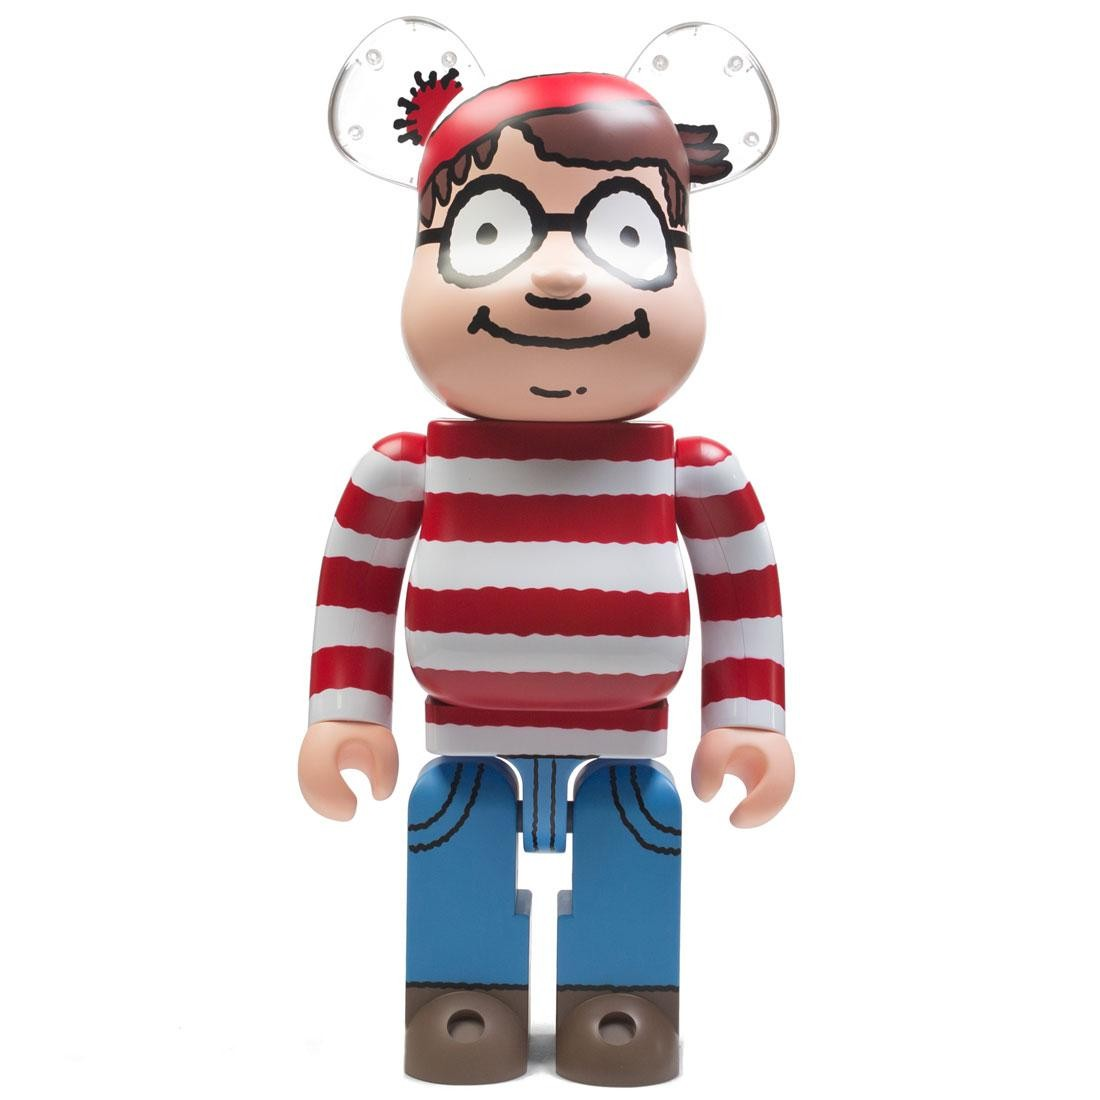 Medicom Where's Wally? Wally 1000% Bearbrick Figure (red)